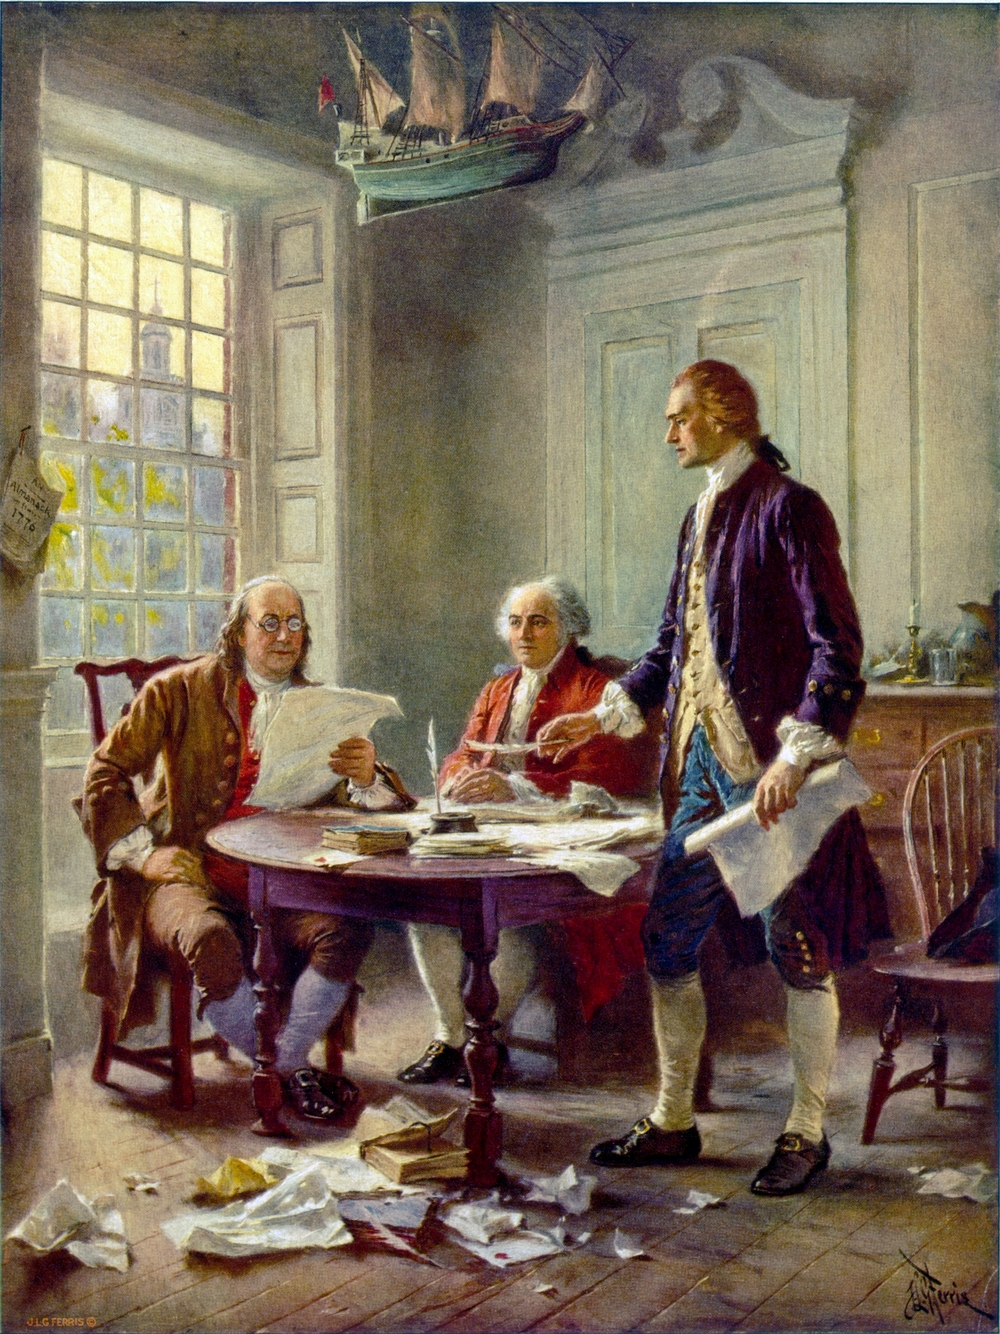 Thomas Jefferson, Benjamin Franklin and John Adams pictured above.